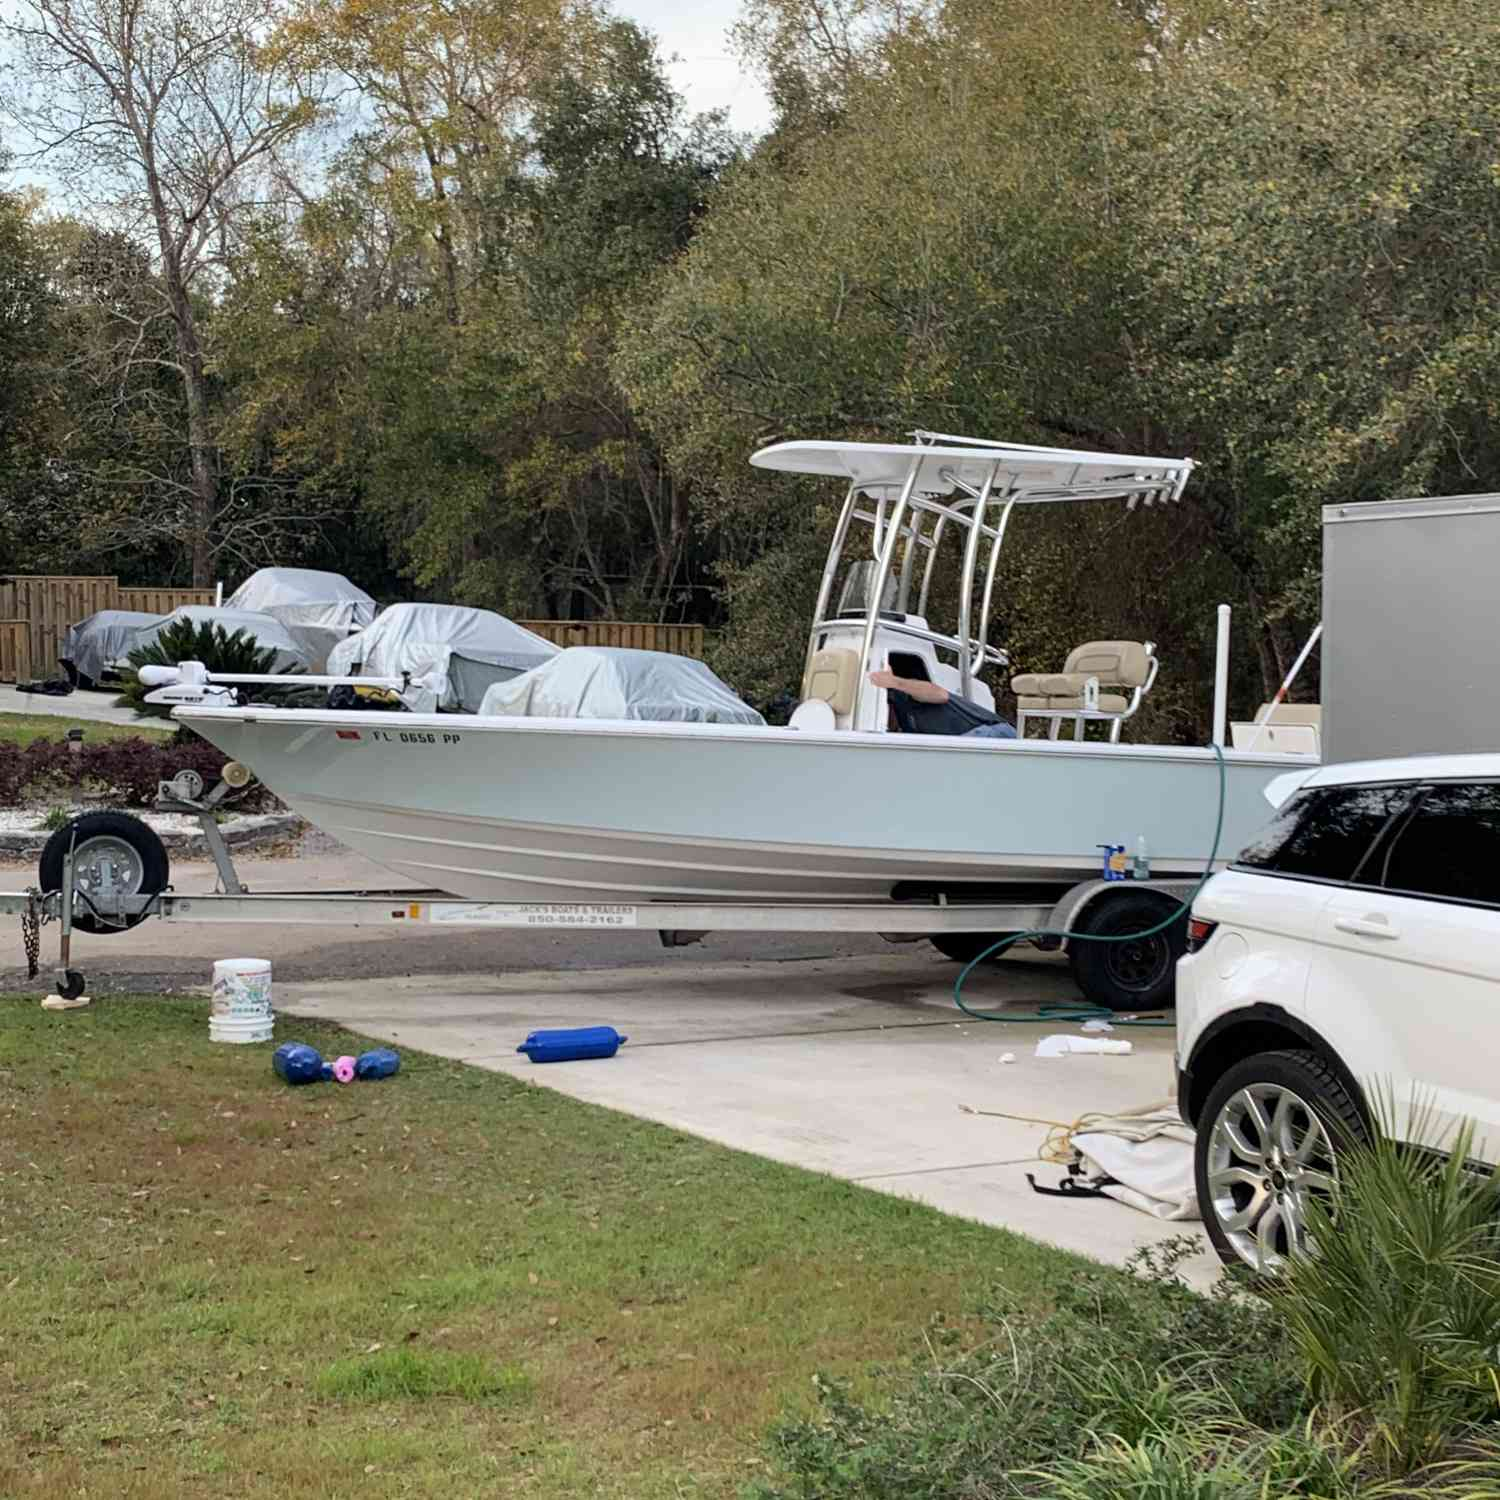 Title: Ready to get on the water! - On board their Sportsman Masters 247 Bay Boat - Location: Perdido Key, FL. Participating in the Photo Contest #SportsmanApril2020